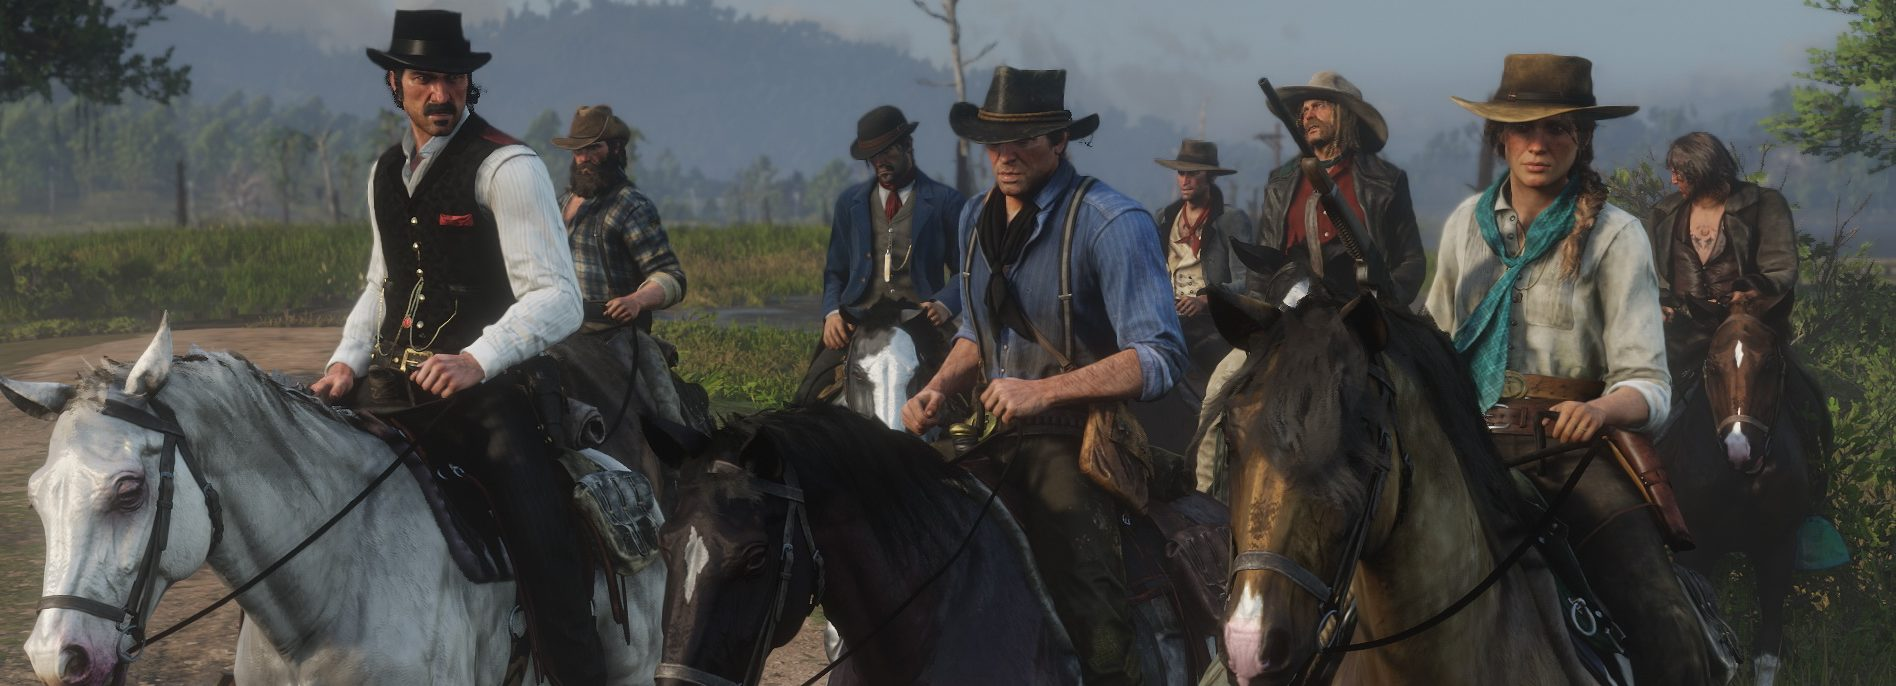 Red Dead Redemption 2 für die Switch? Nintendo sagt: Doofes Timing